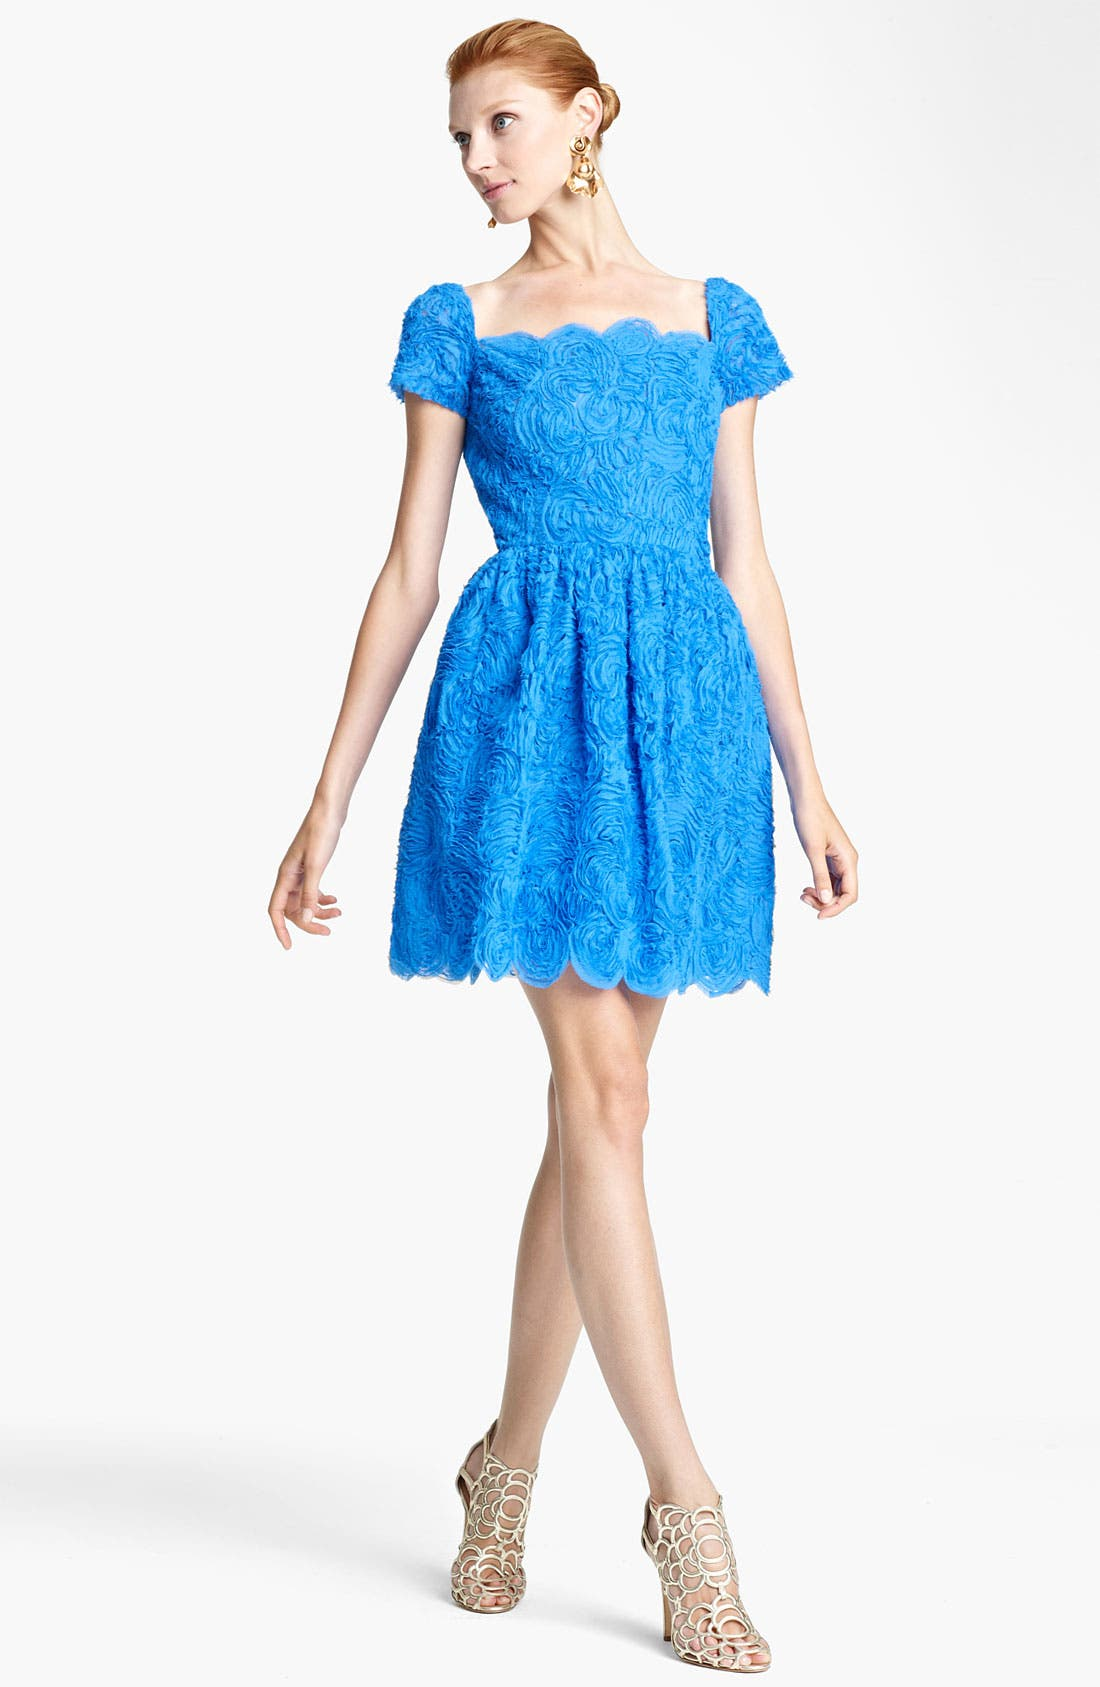 Main Image - Oscar de la Renta Embroidered Cocktail Dress